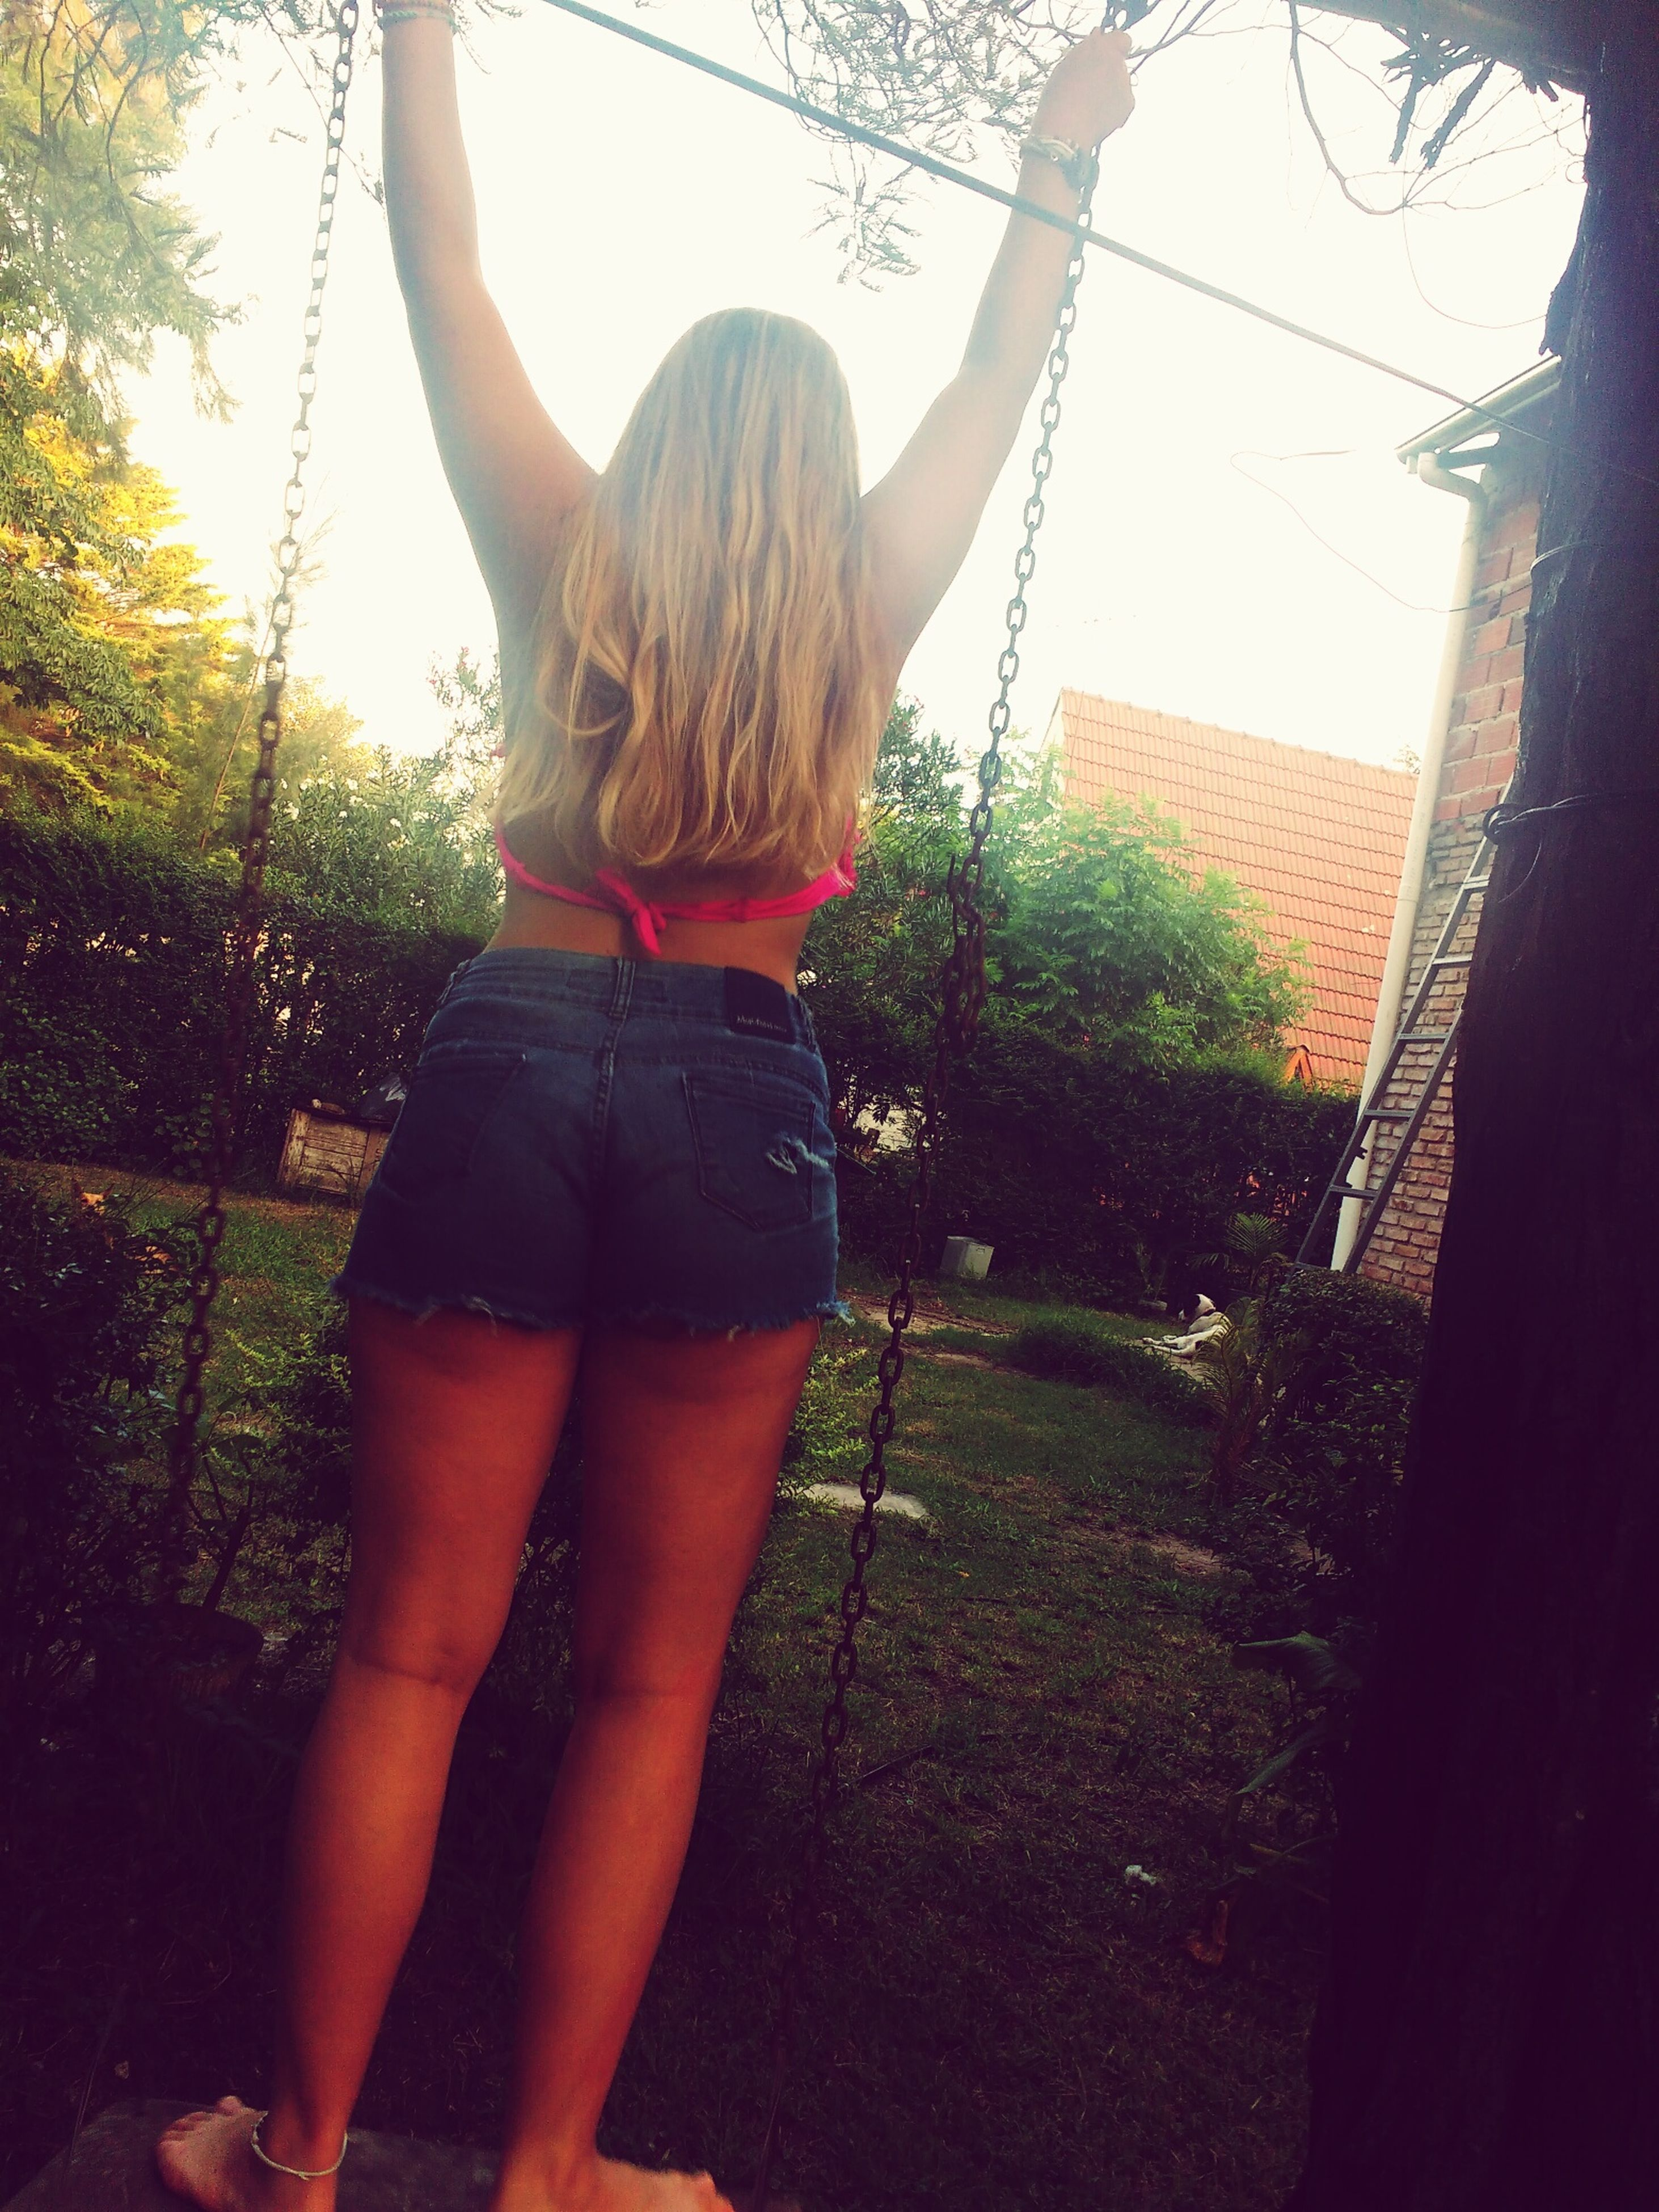 childhood, one person, real people, girls, rear view, tree, elementary age, blond hair, swing, casual clothing, playing, full length, day, leisure activity, front or back yard, outdoors, standing, lifestyles, one girl only, grass, rope swing, sky, people